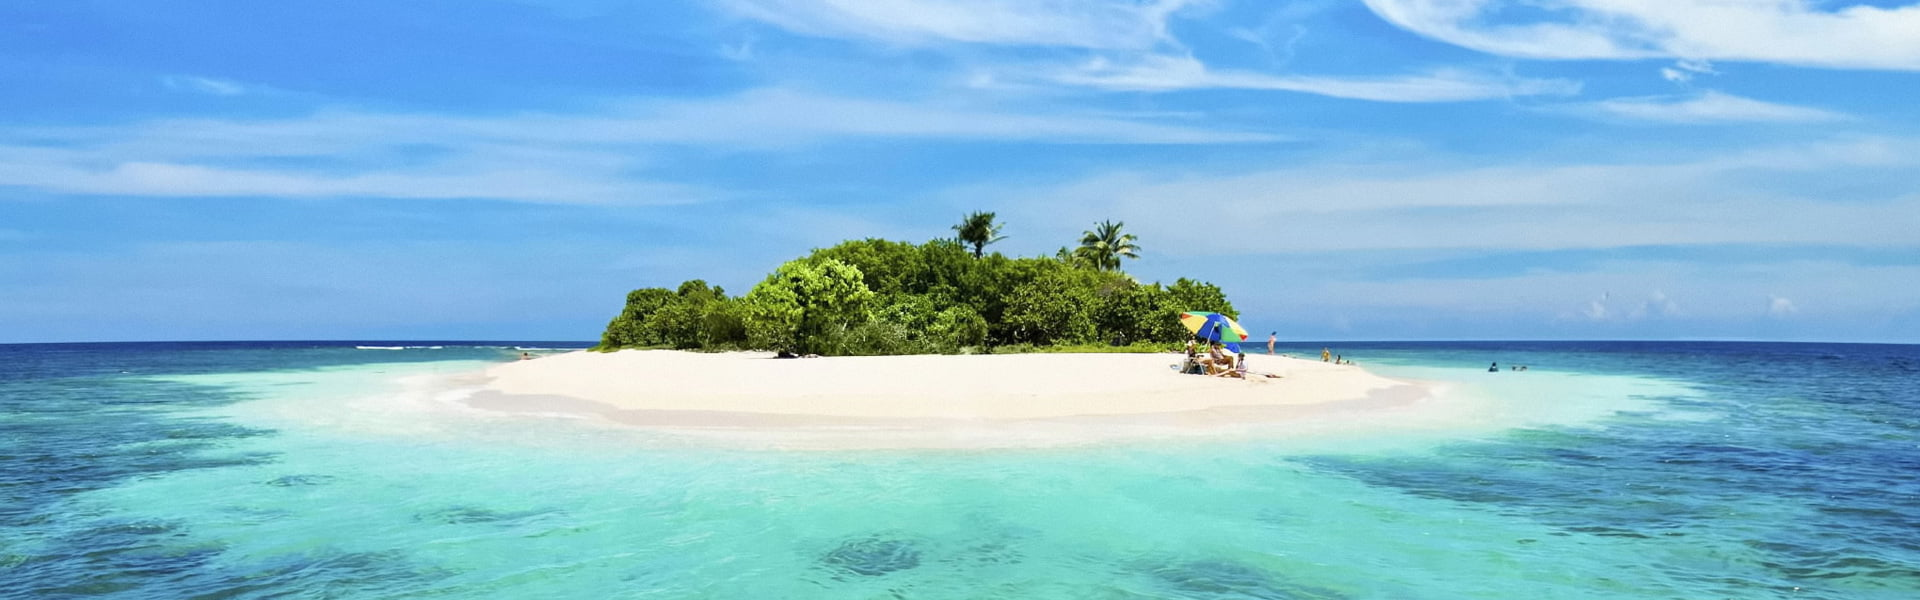 sandy-island-in-the-middle-of-the-ocean-wallpaper-1920x600-415